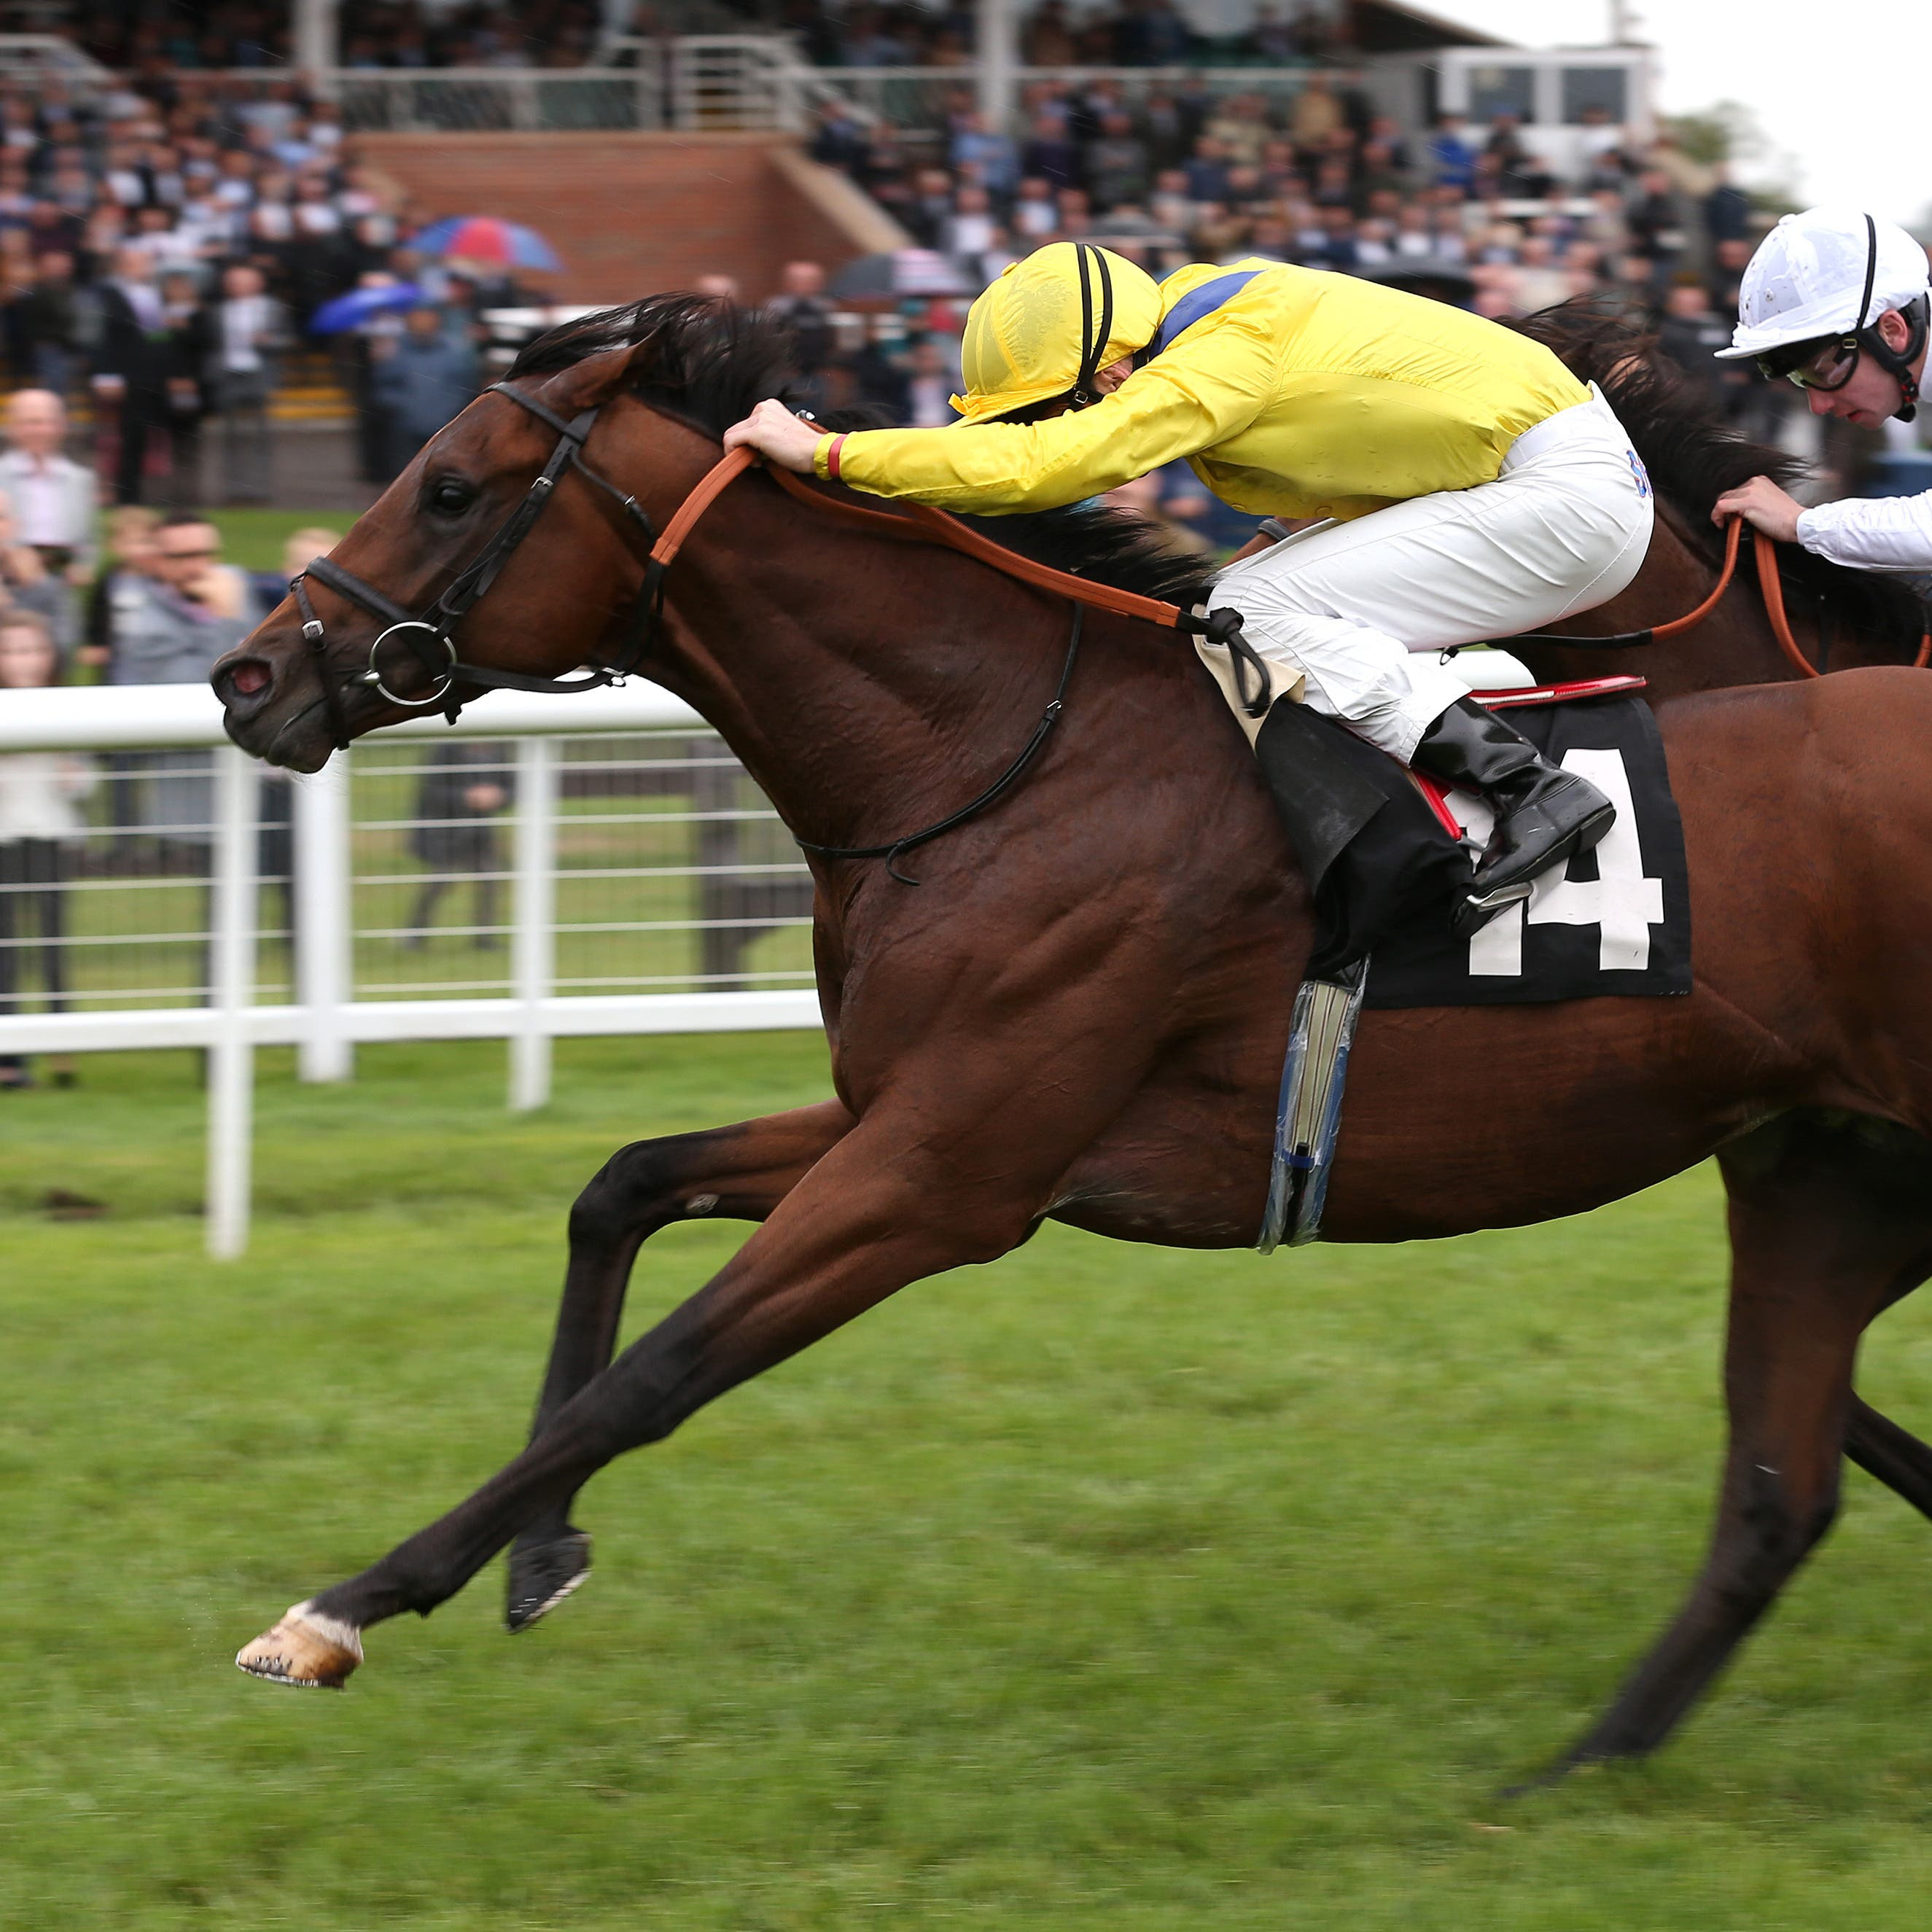 Politicise showed his real worth in winning at Newbury